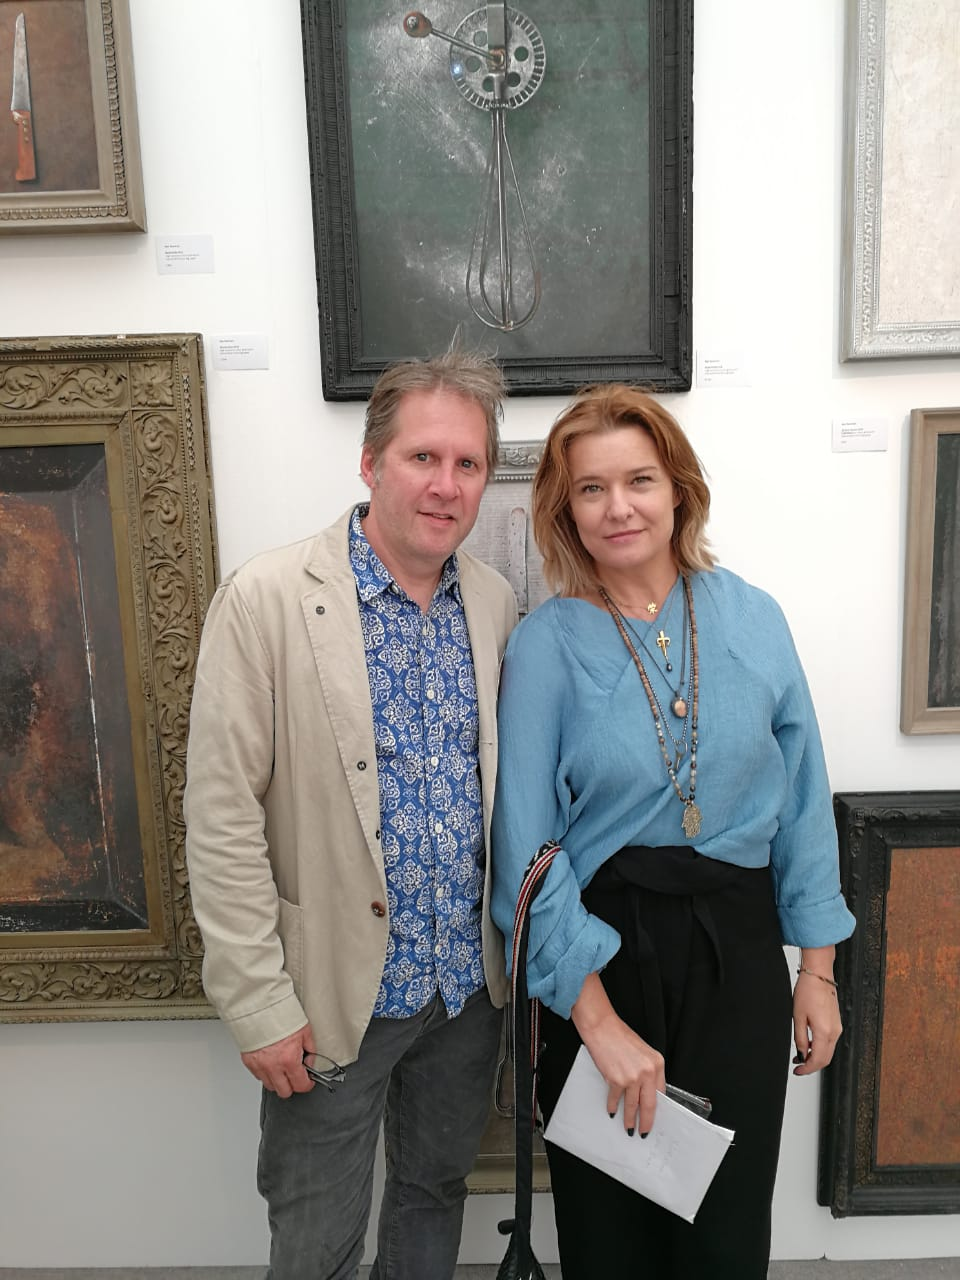 With artist Allan Newnham